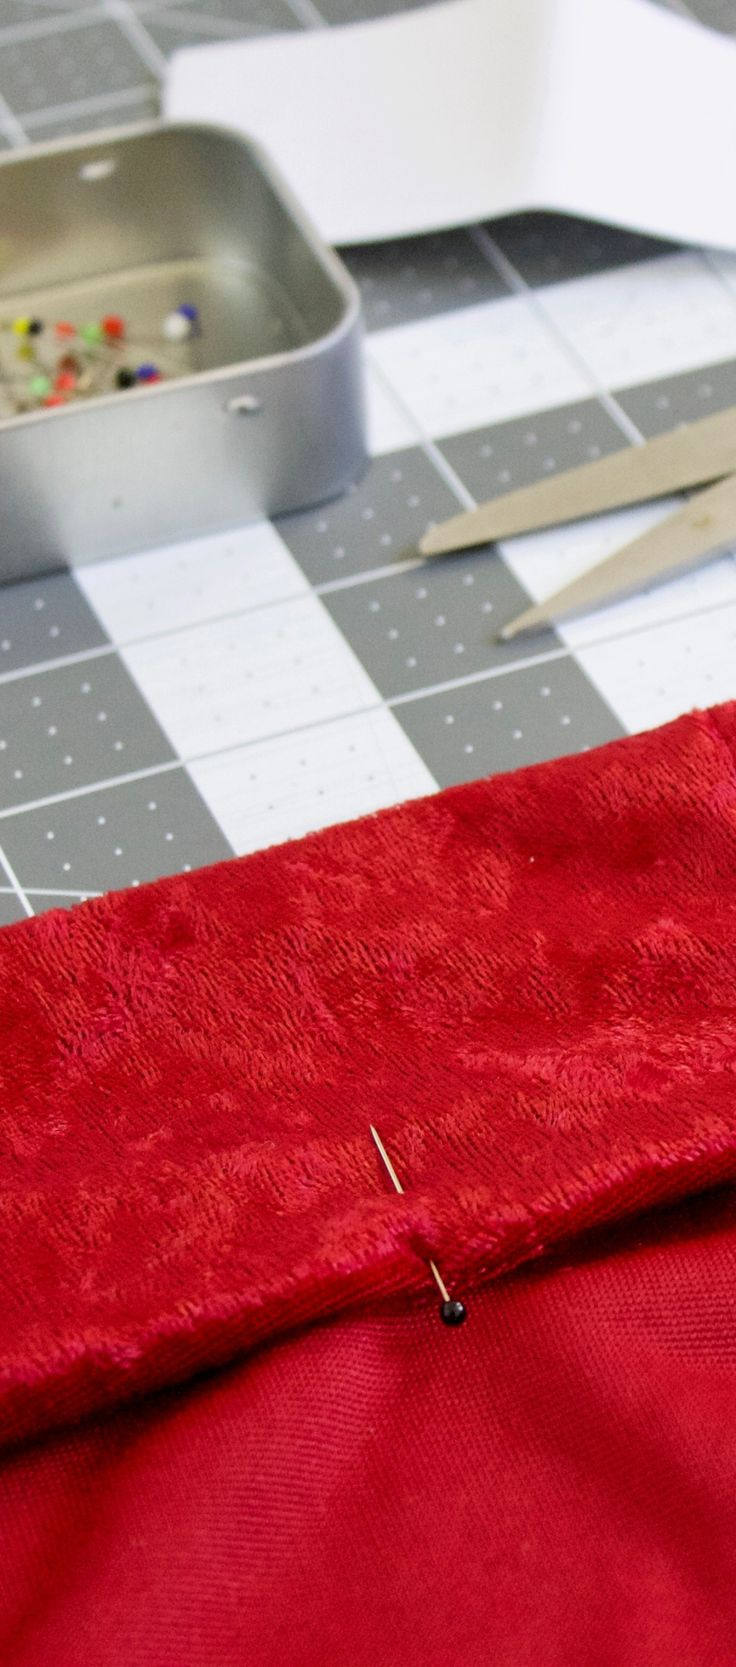 We can't help but love any project that involves velvet! Click here to learn how to make red high waisted pants. Best part? They're easy to make dressy or casual depending on the party.